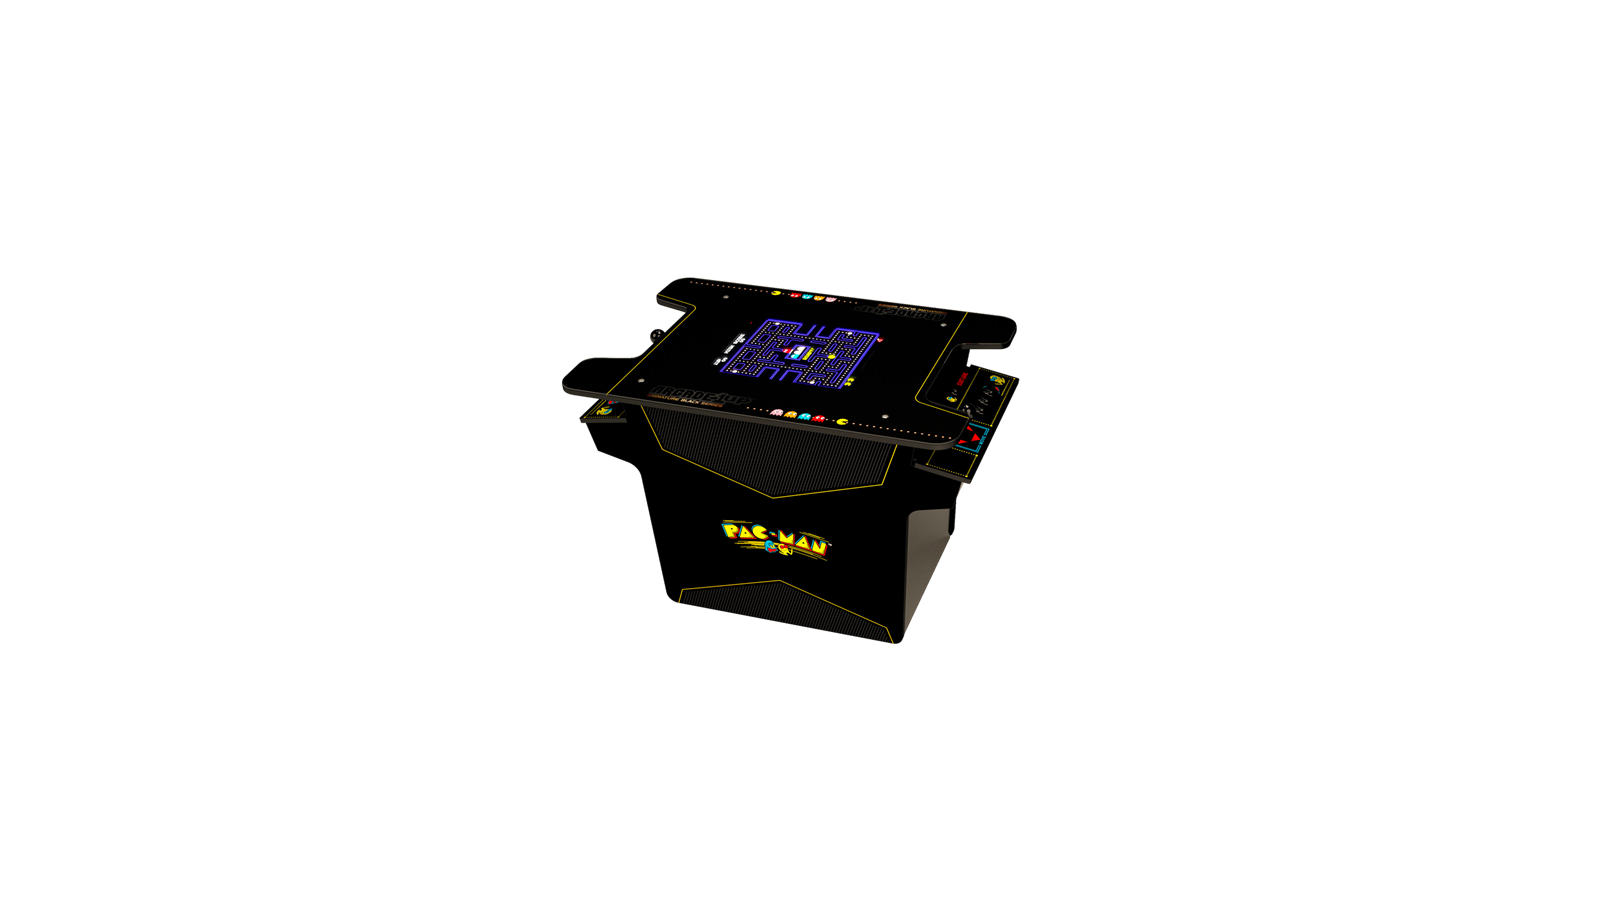 A cocktail table machine featuring Pac-Man and other games.